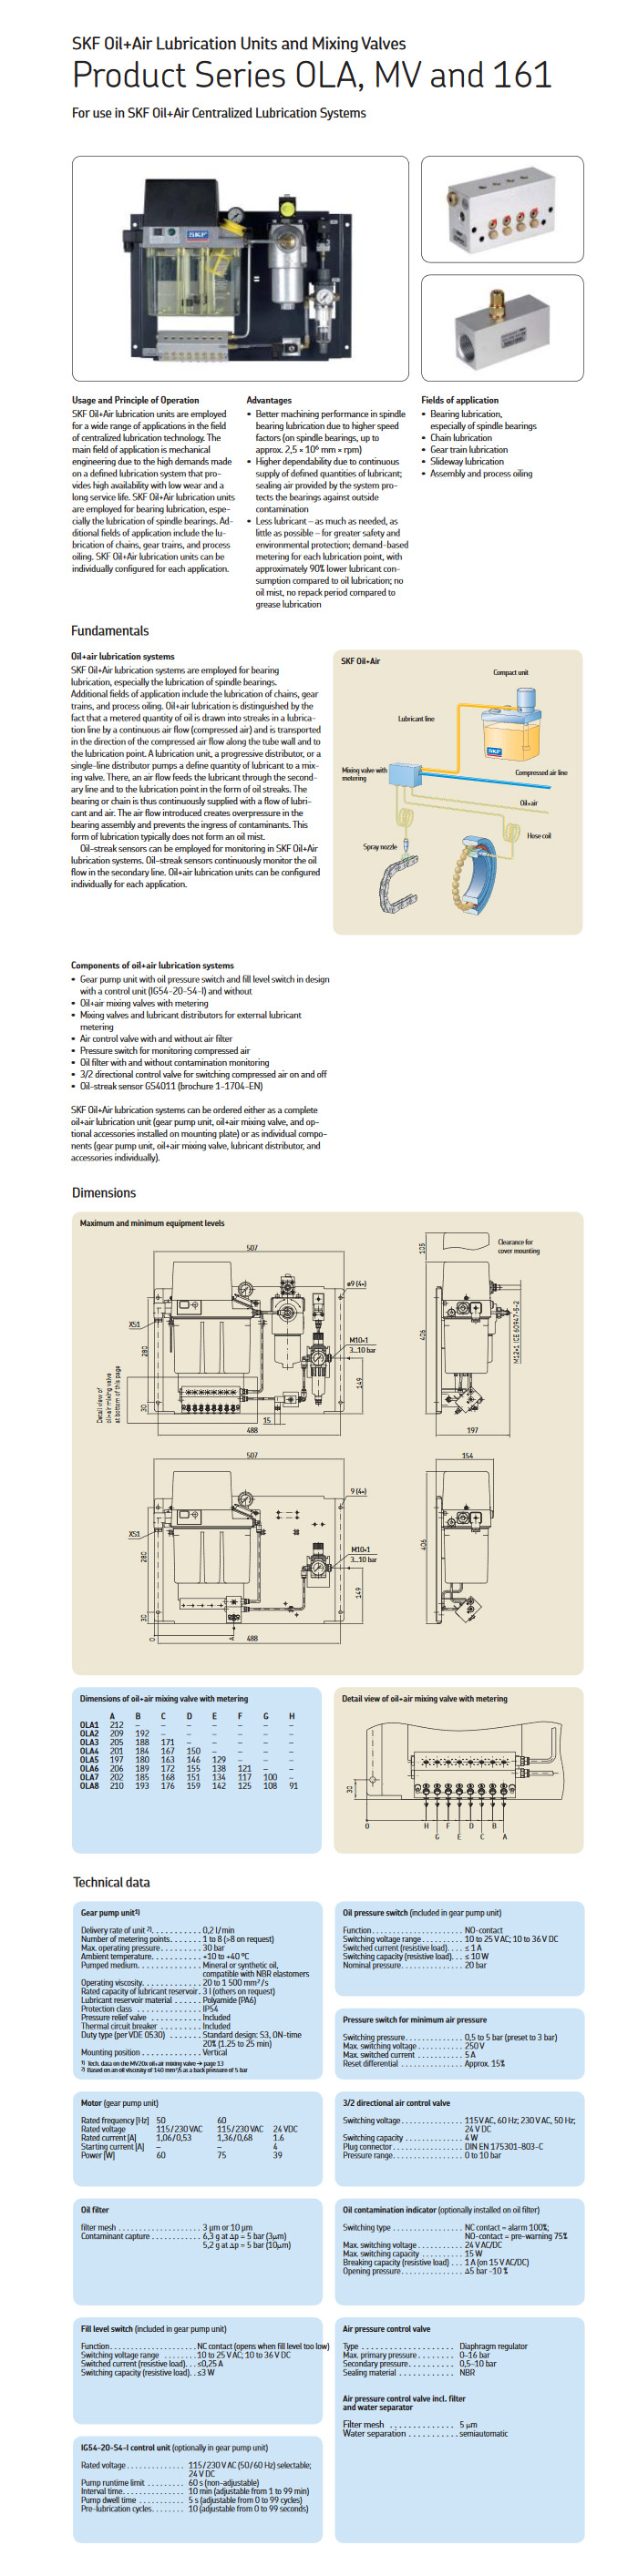 Compact Unit Oil Air Lubrication With Control Incl Filter Skf Wiring Diagram We Are Glad To Consult You